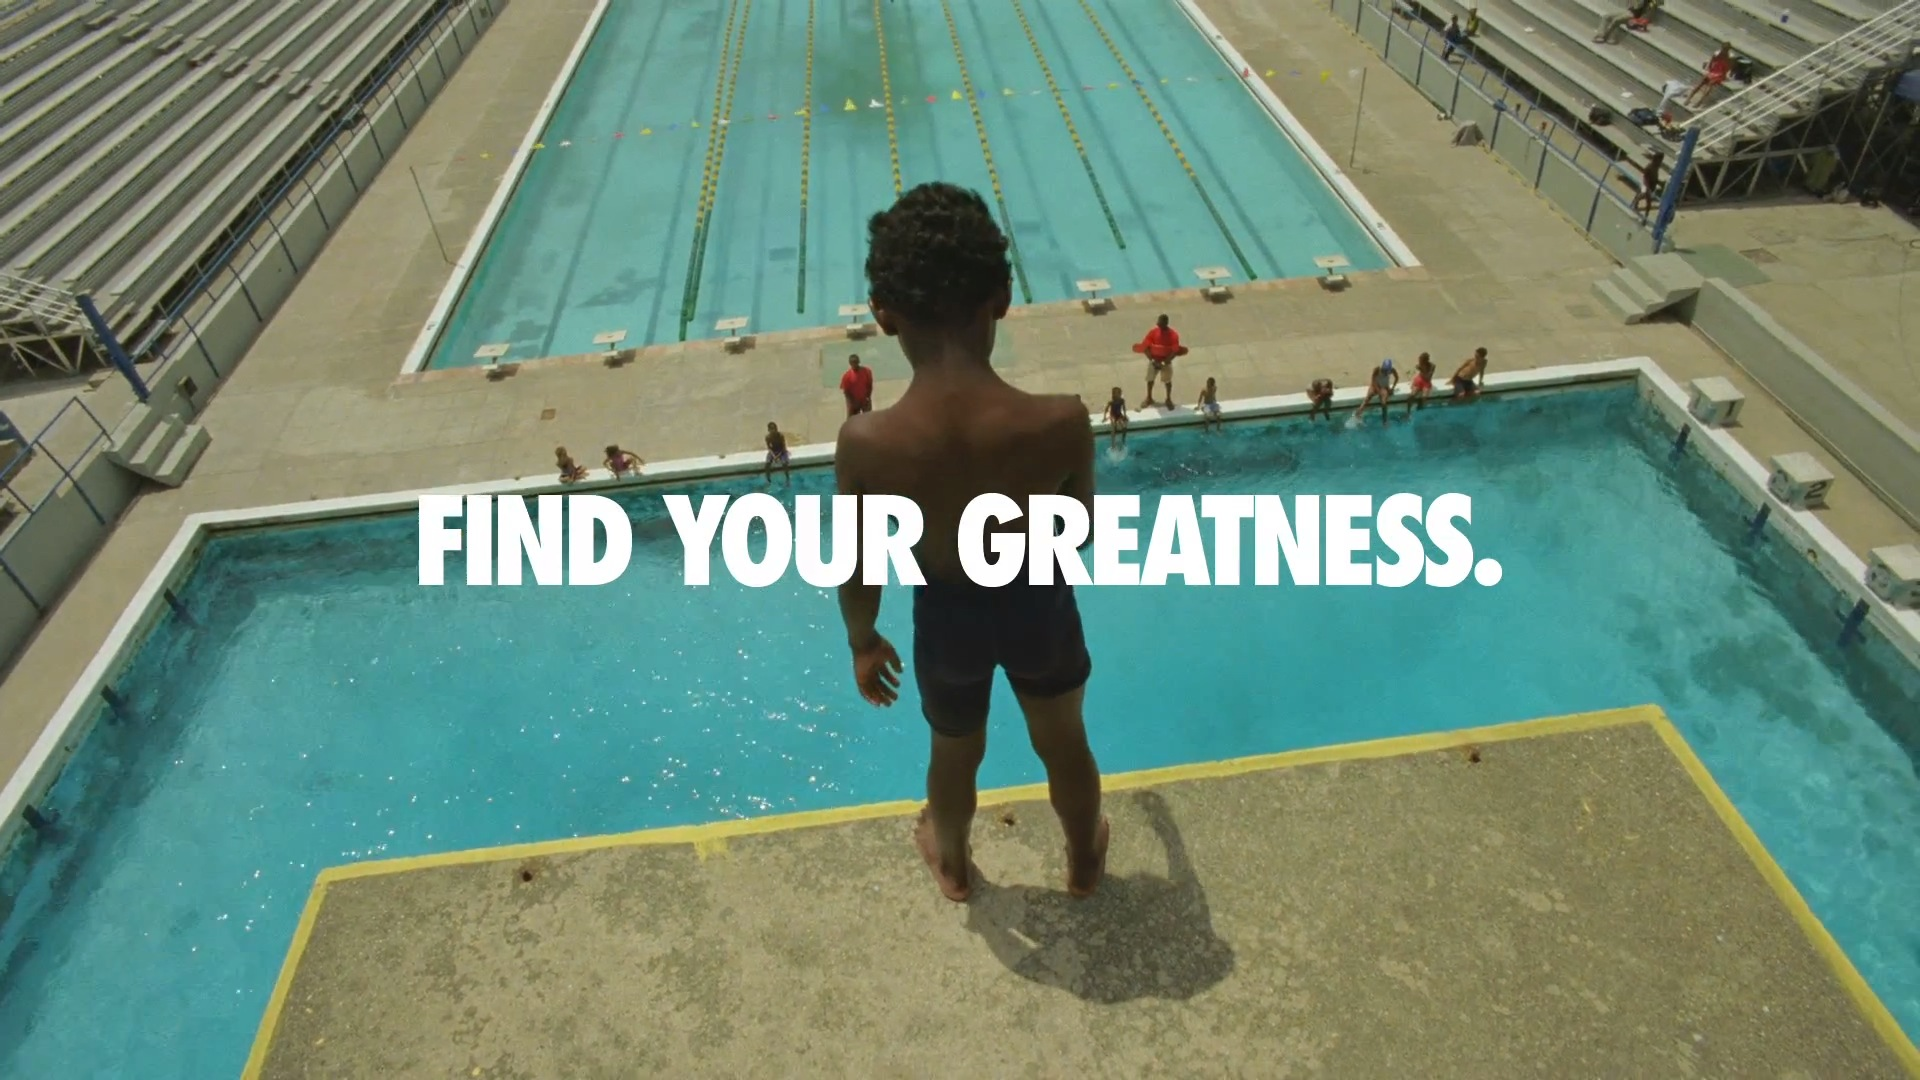 nike-find-your-greatness6.jpeg